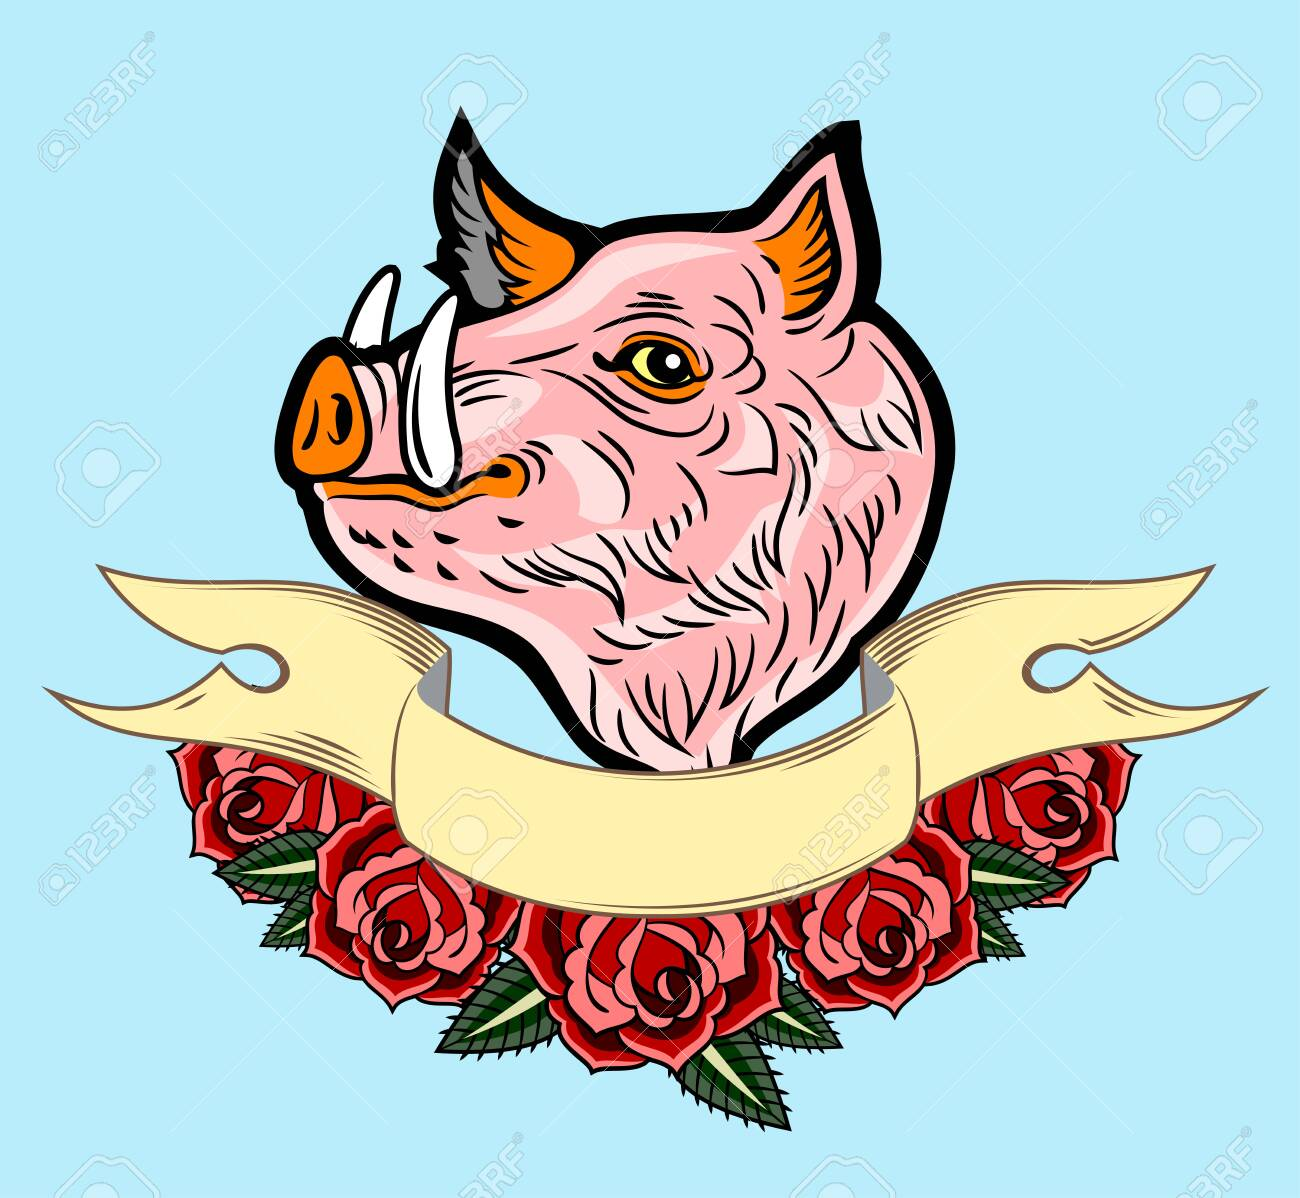 Cute, good-natured pink hog style old school tattoo, with red roses and a banner - 130854592